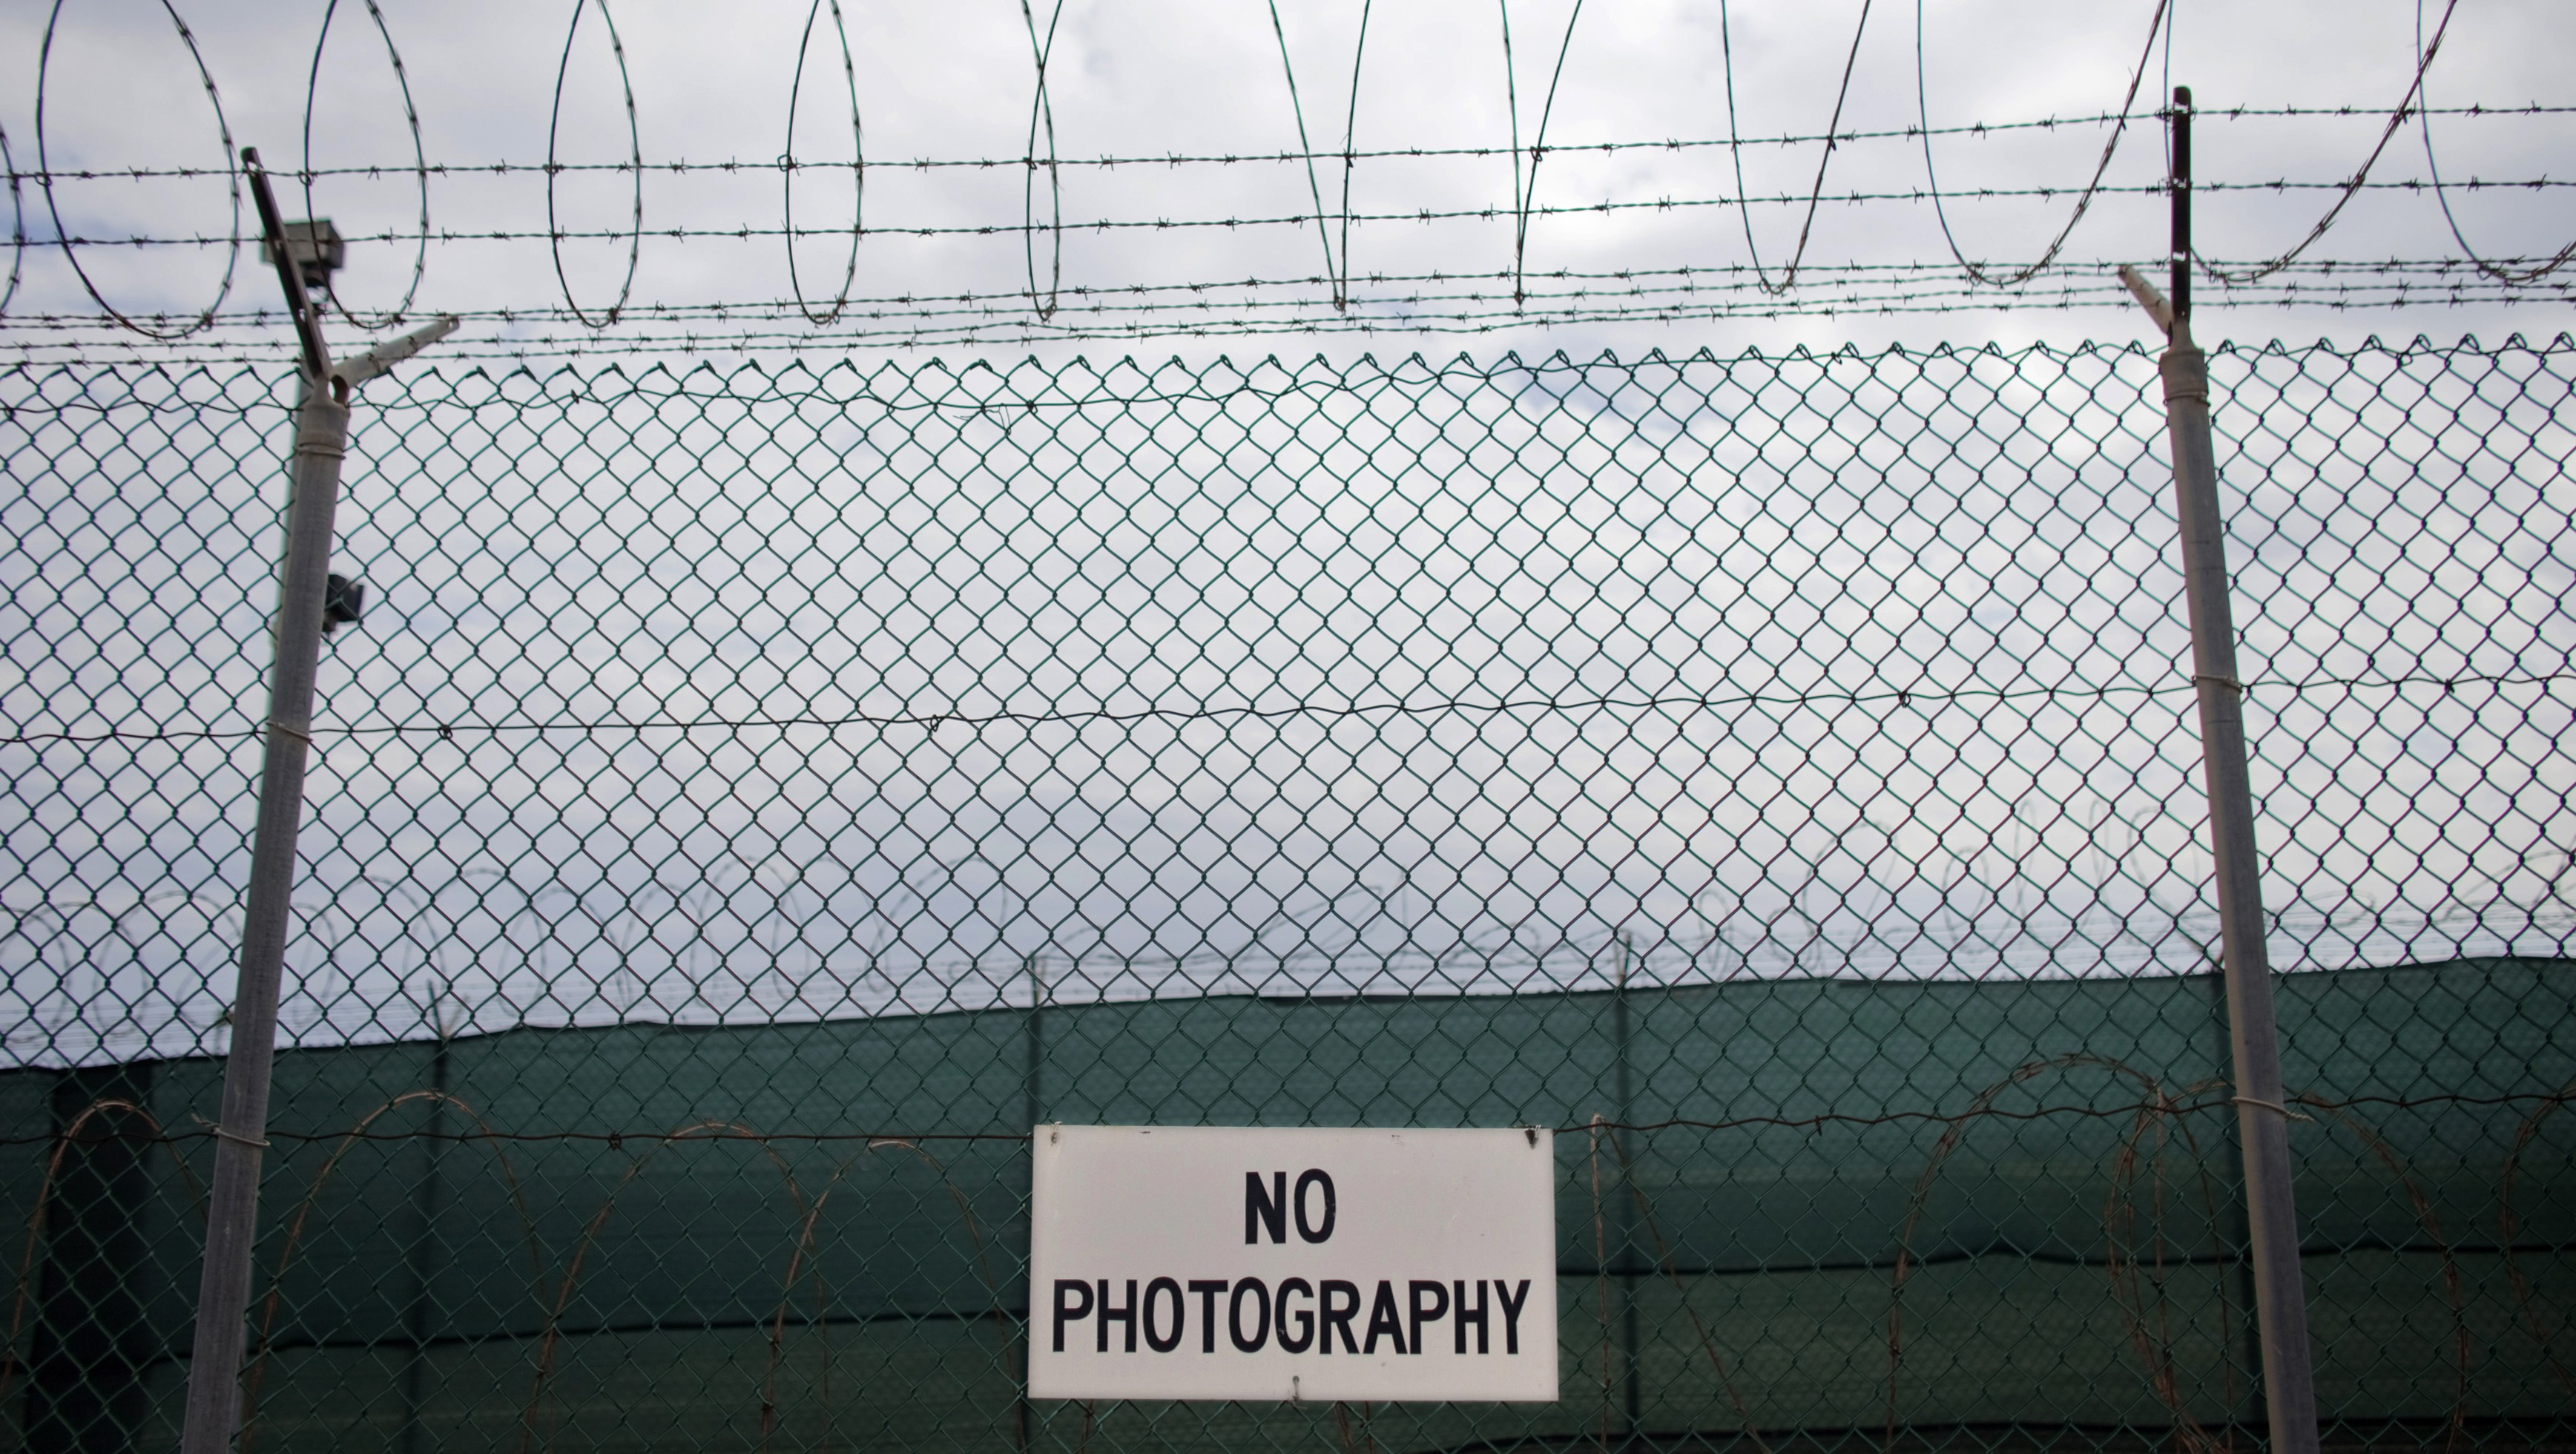 No photography signs are posted on the fence surrounding Camp Delta at the U.S. Naval Base at Guantanamo Bay, March 6, 2013. The facility is operated by the Joint Task Force Guantanamo and holds prisoners who have been captured in the war in Afghanistan and elsewhere since the September 11, 2001 attacks. Picture taken March 6, 2013. REUTERS/Bob Strong  (CUBA - Tags: POLITICS MILITARY CRIME LAW) - RTR3ETZL